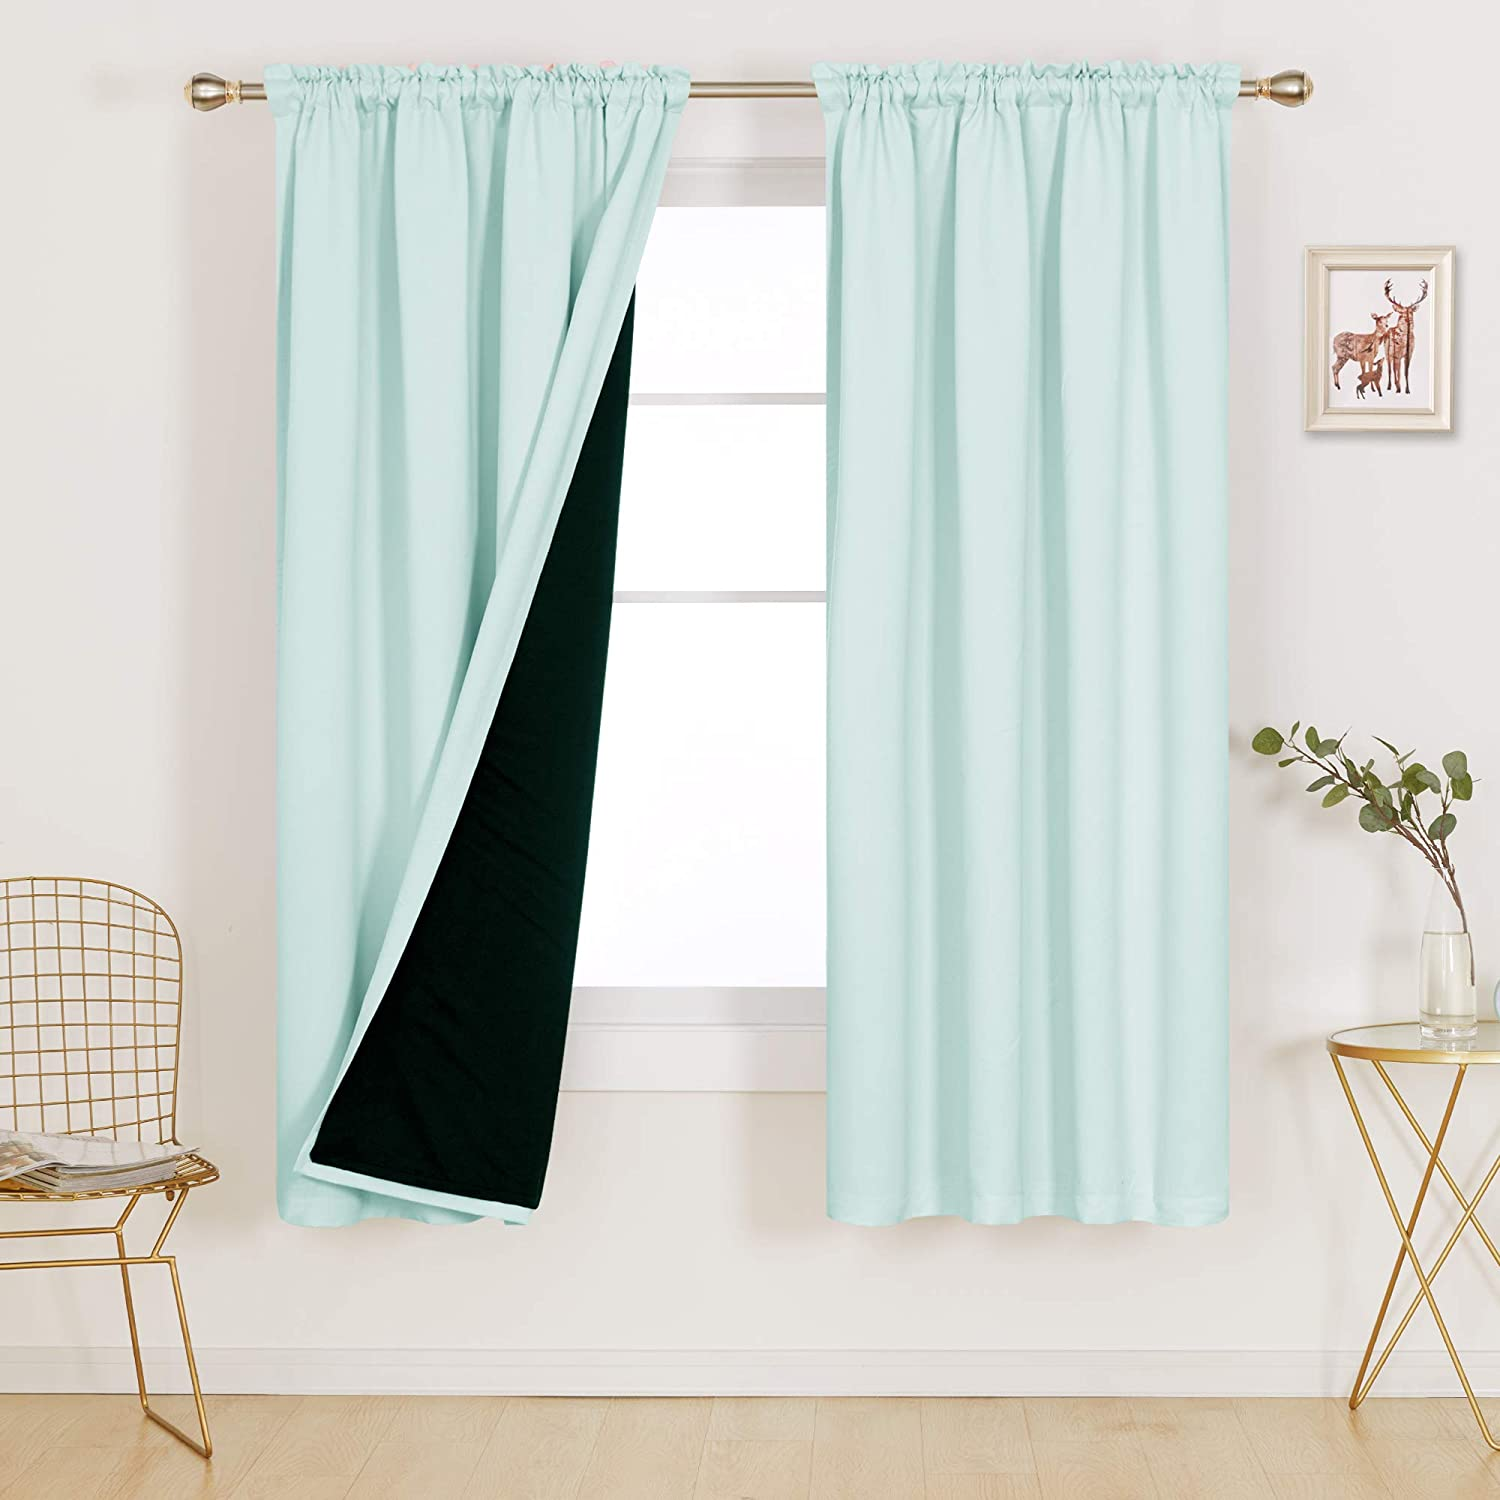 Deconovo Blue 100% Blackout Curtains Thermal Insulated Total Block Out Sun Heat Cold and Noise for Bedroom Living Room Home Office Kids Room Window Little Boy Nursery, Set of 2, 52x72 in, Baby Blue